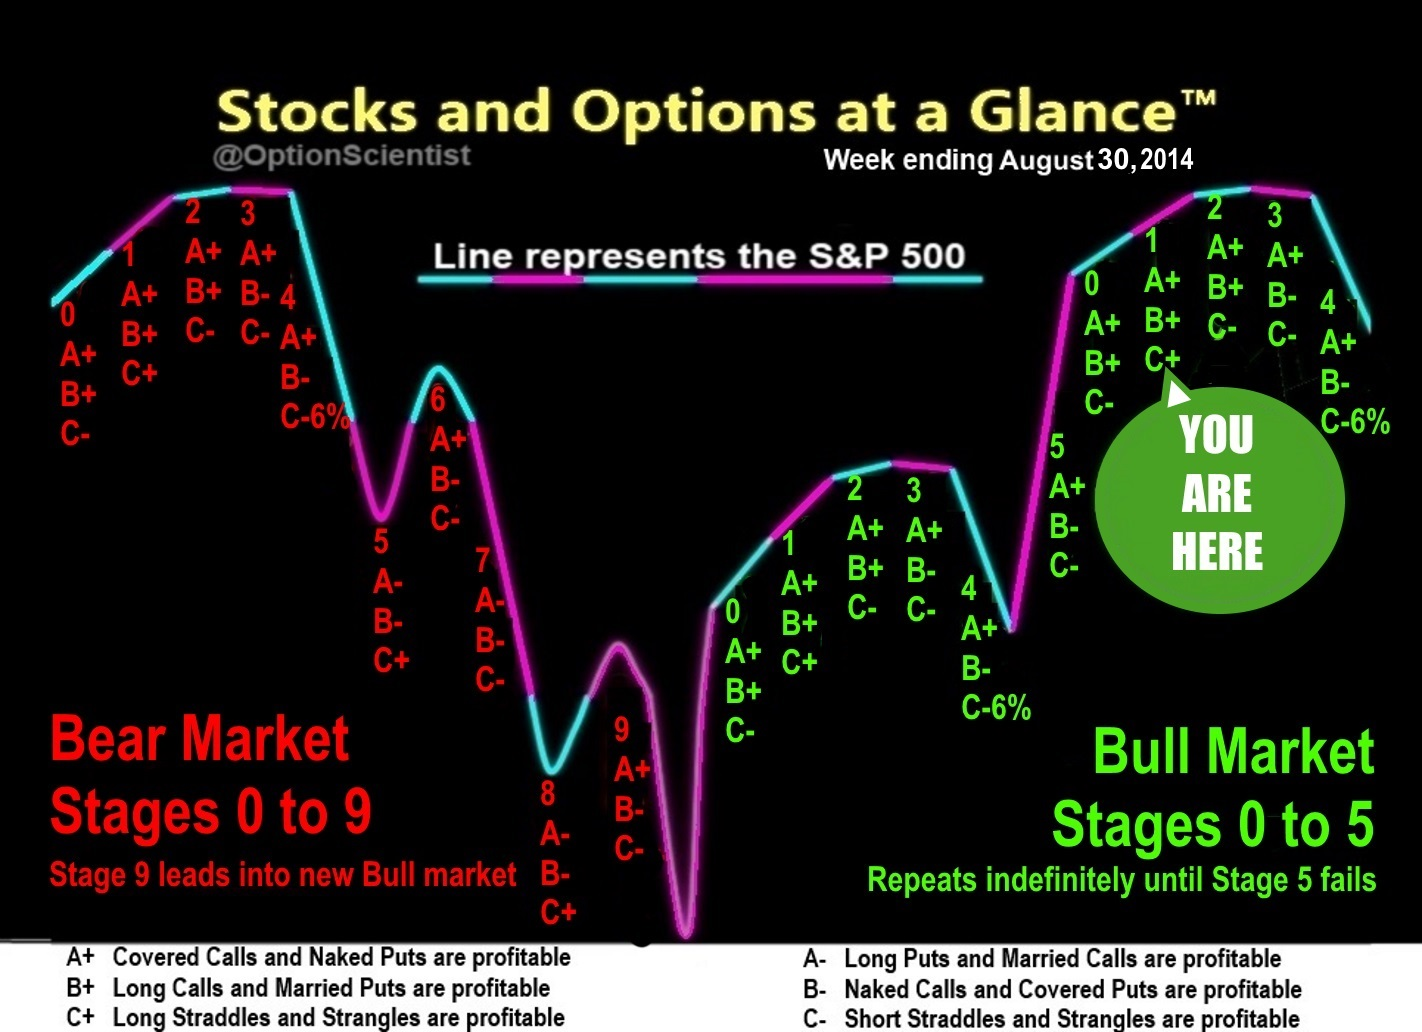 Stocks and Options at a Glance 2014-08-30